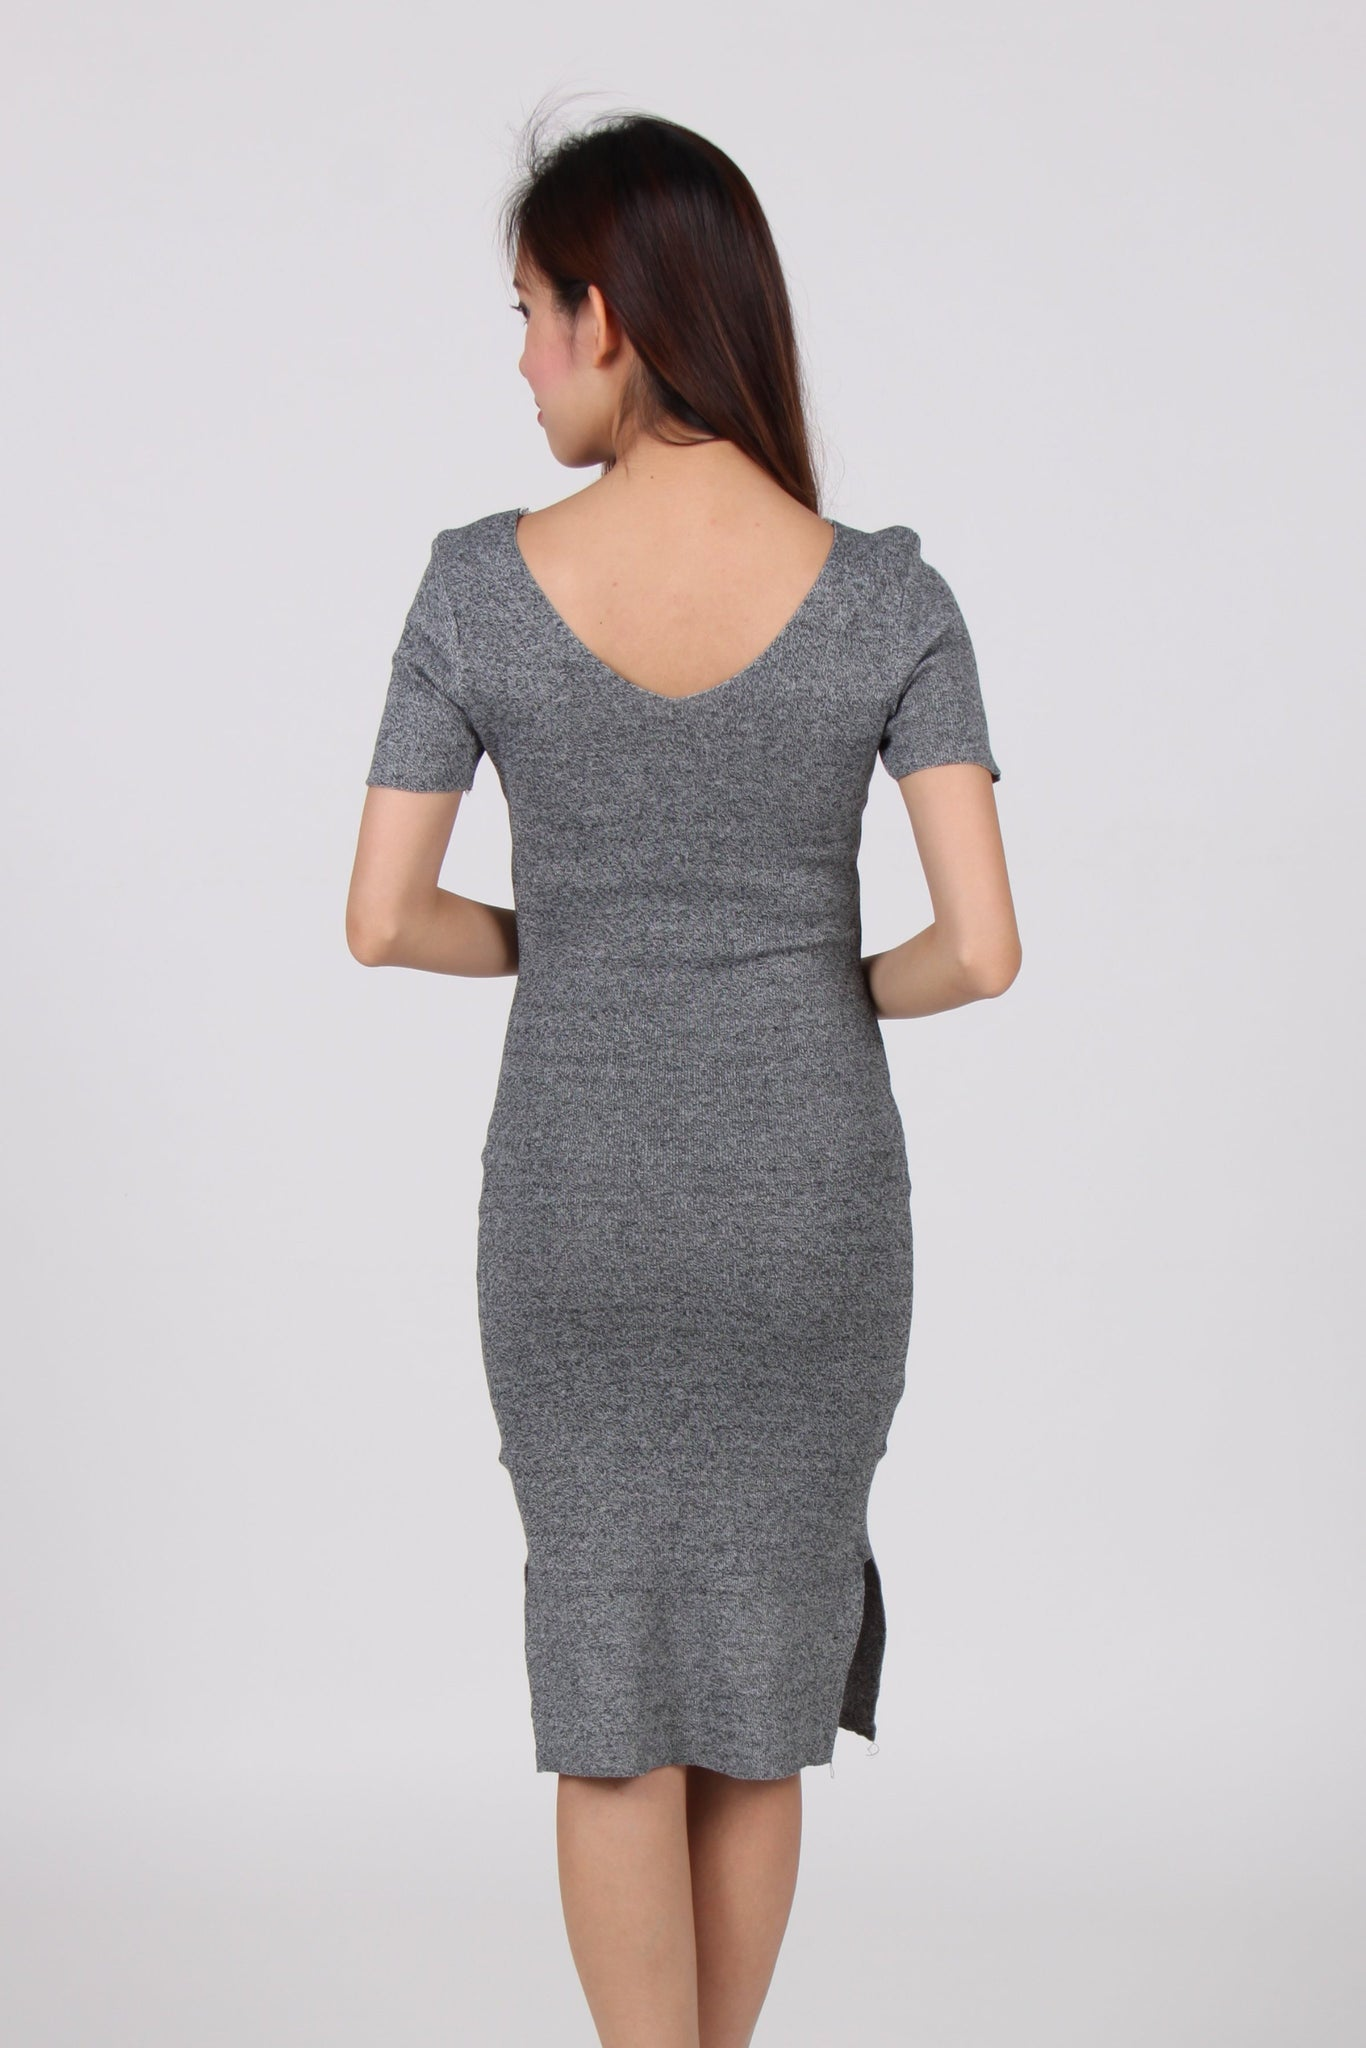 V Neck Side Slit Bodycon Dress in Light Grey